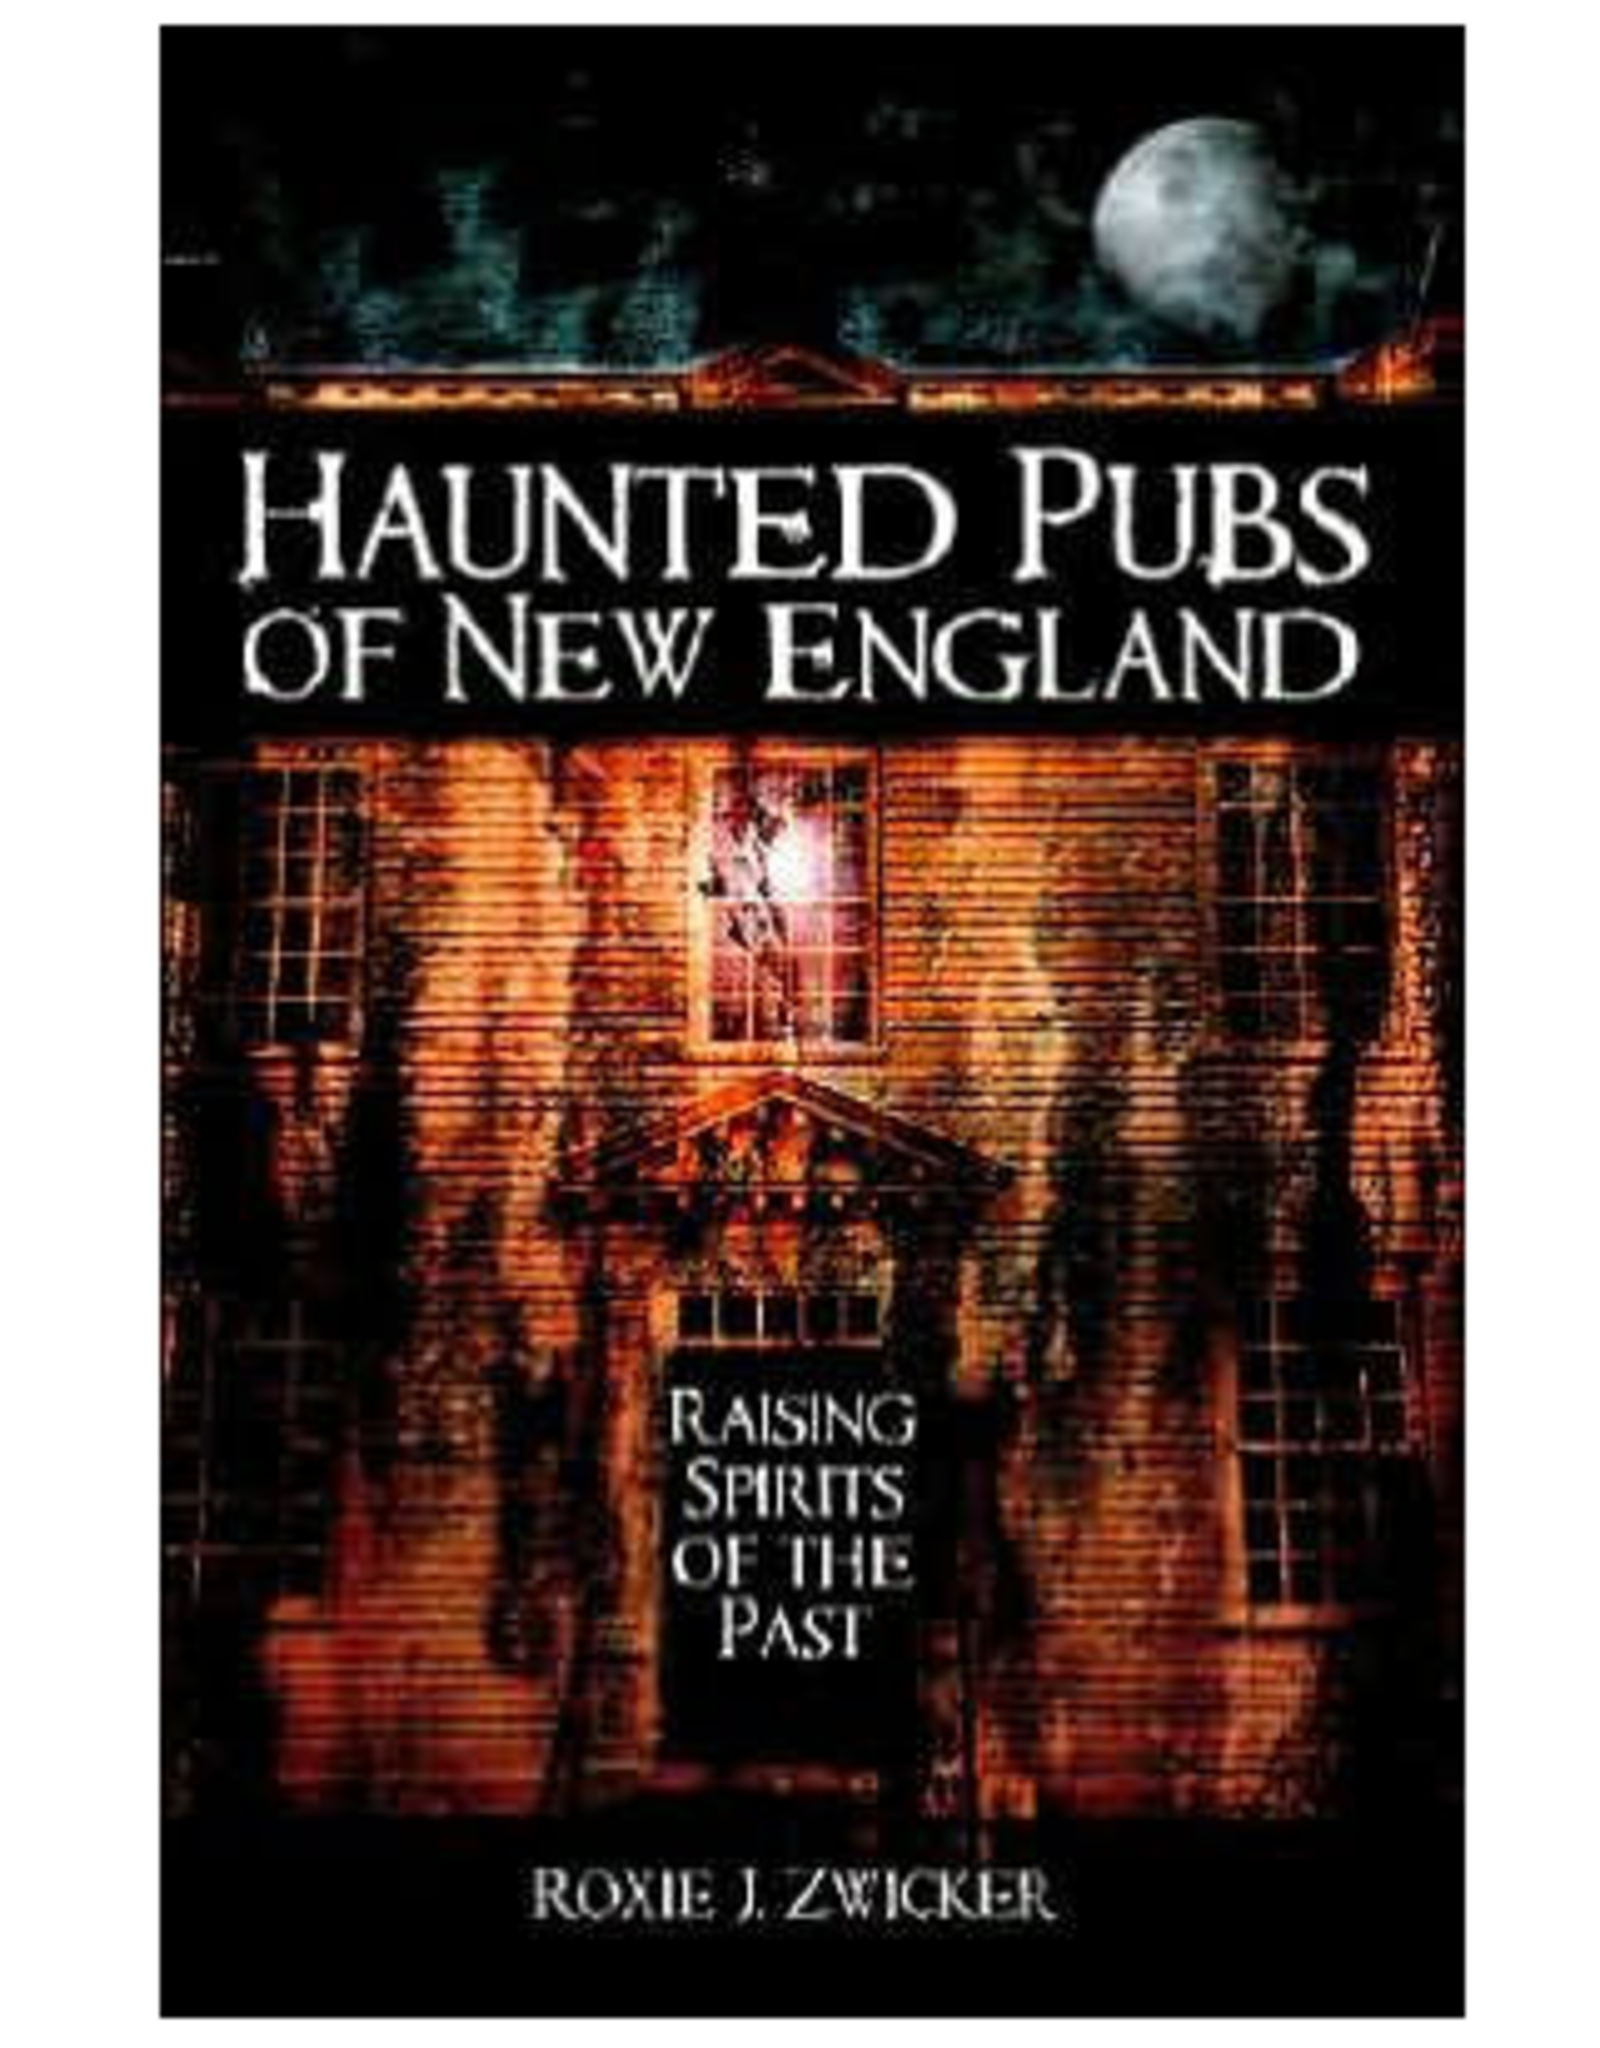 The History Press Haunted Pubs of New England